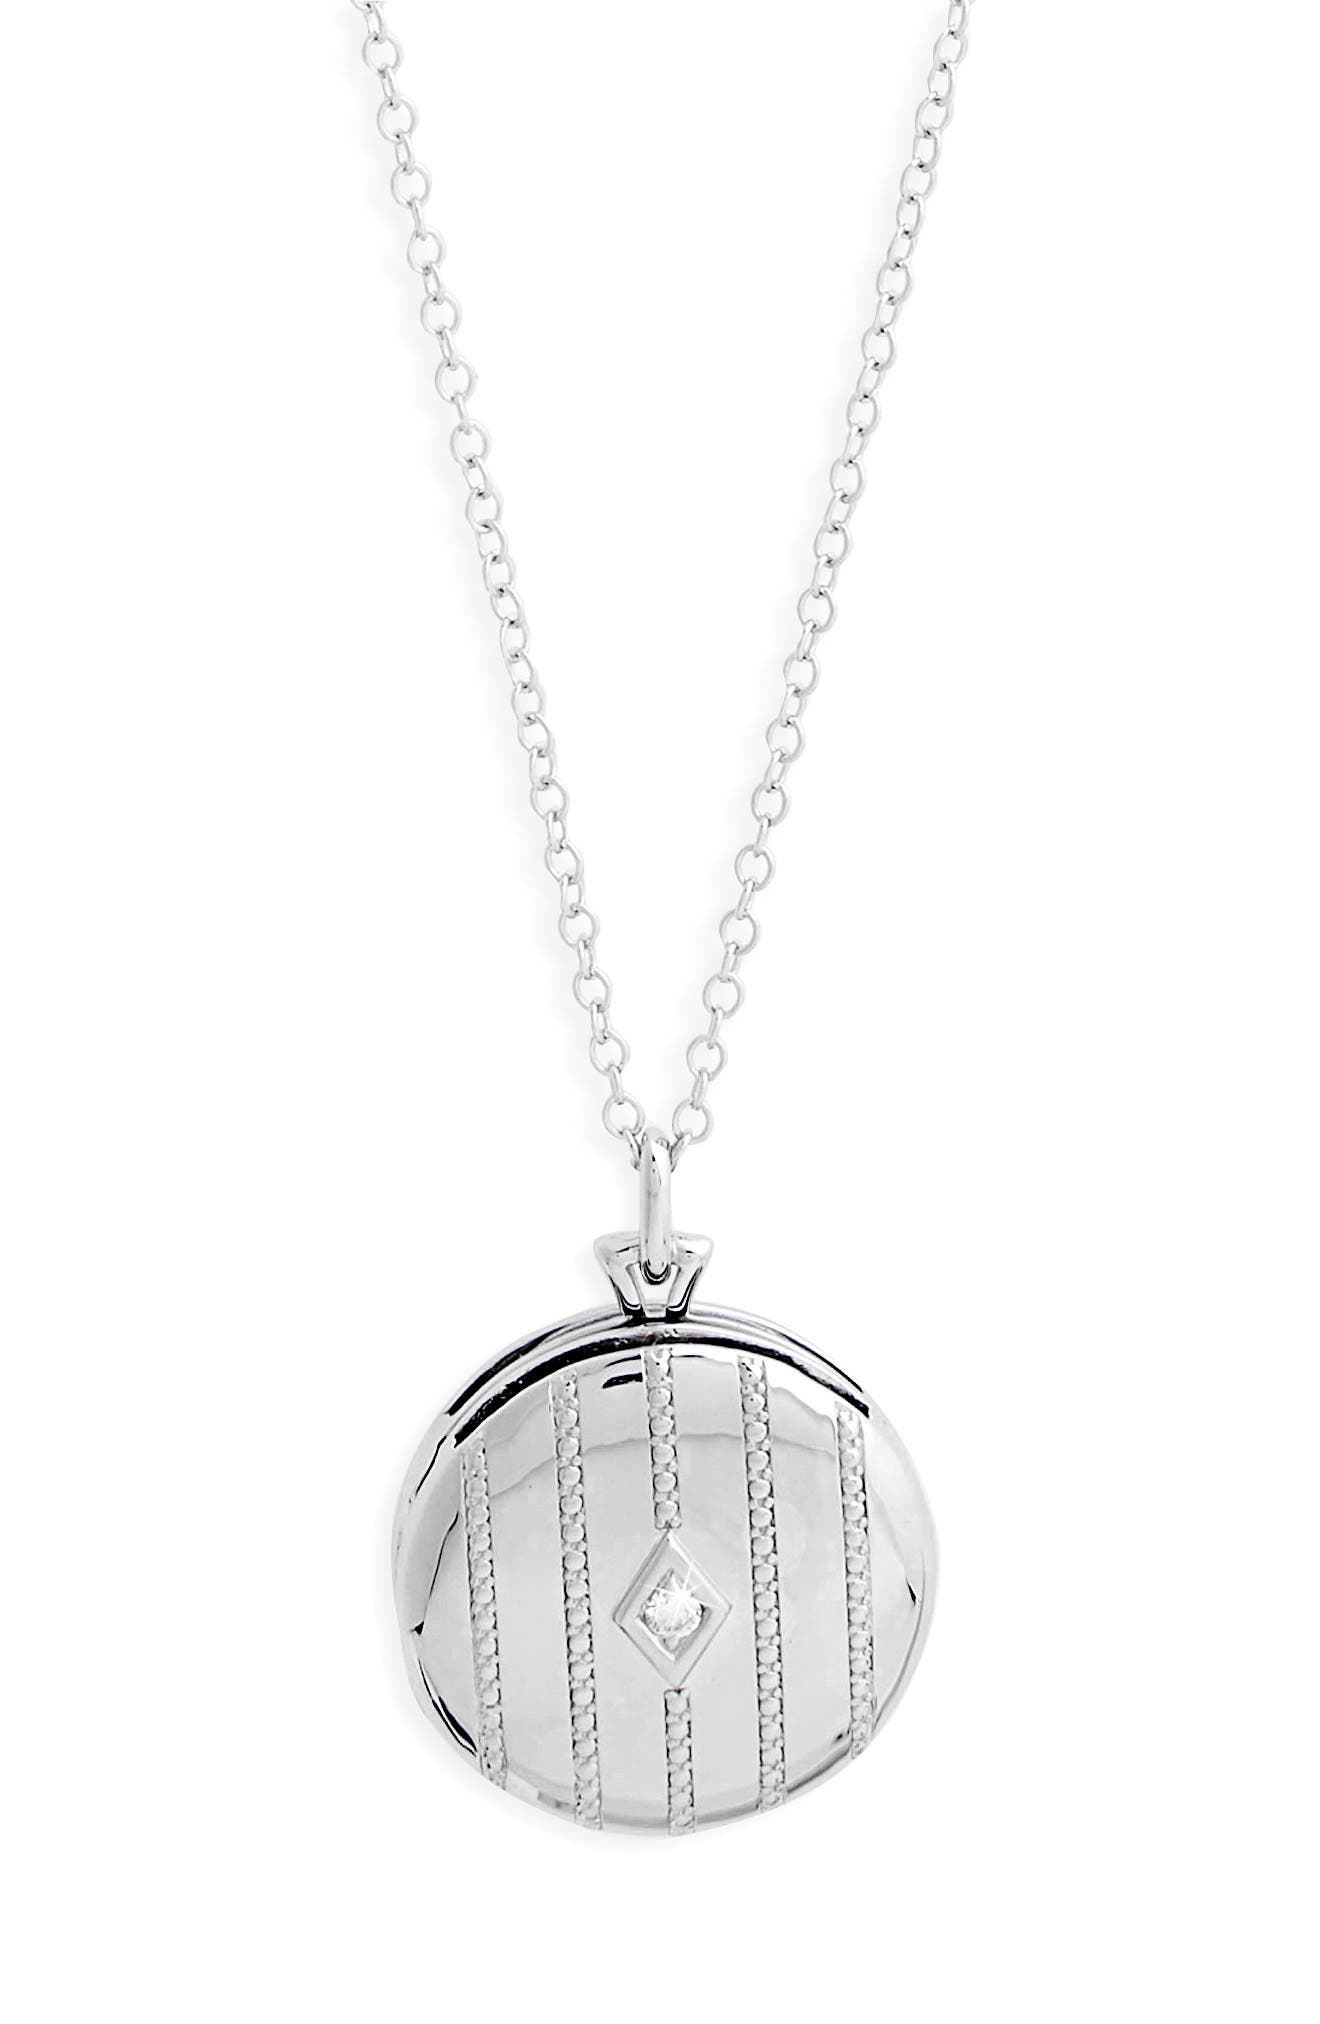 Center Diamond Locket Necklace,                             Alternate thumbnail 4, color,                             Sterling Silver